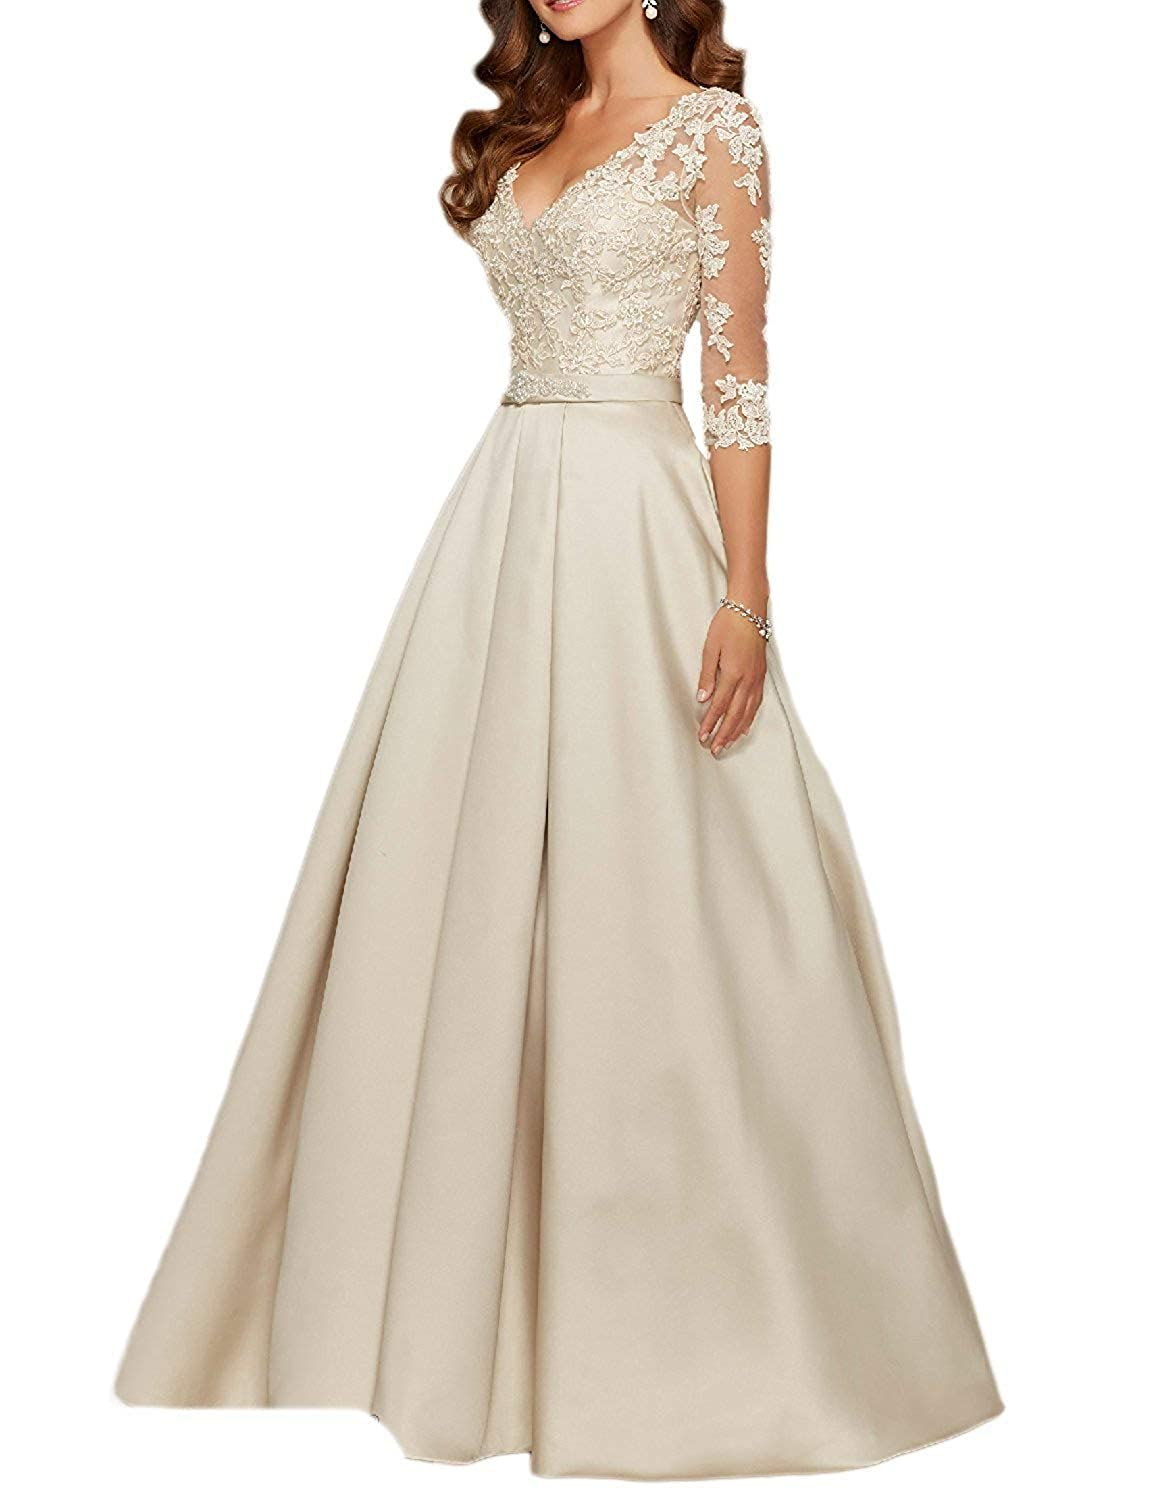 Ivory ynqnfs Women's VNeck 3 4 Sleeves Prom Dress Lace Long Mother of The Bride Dresses